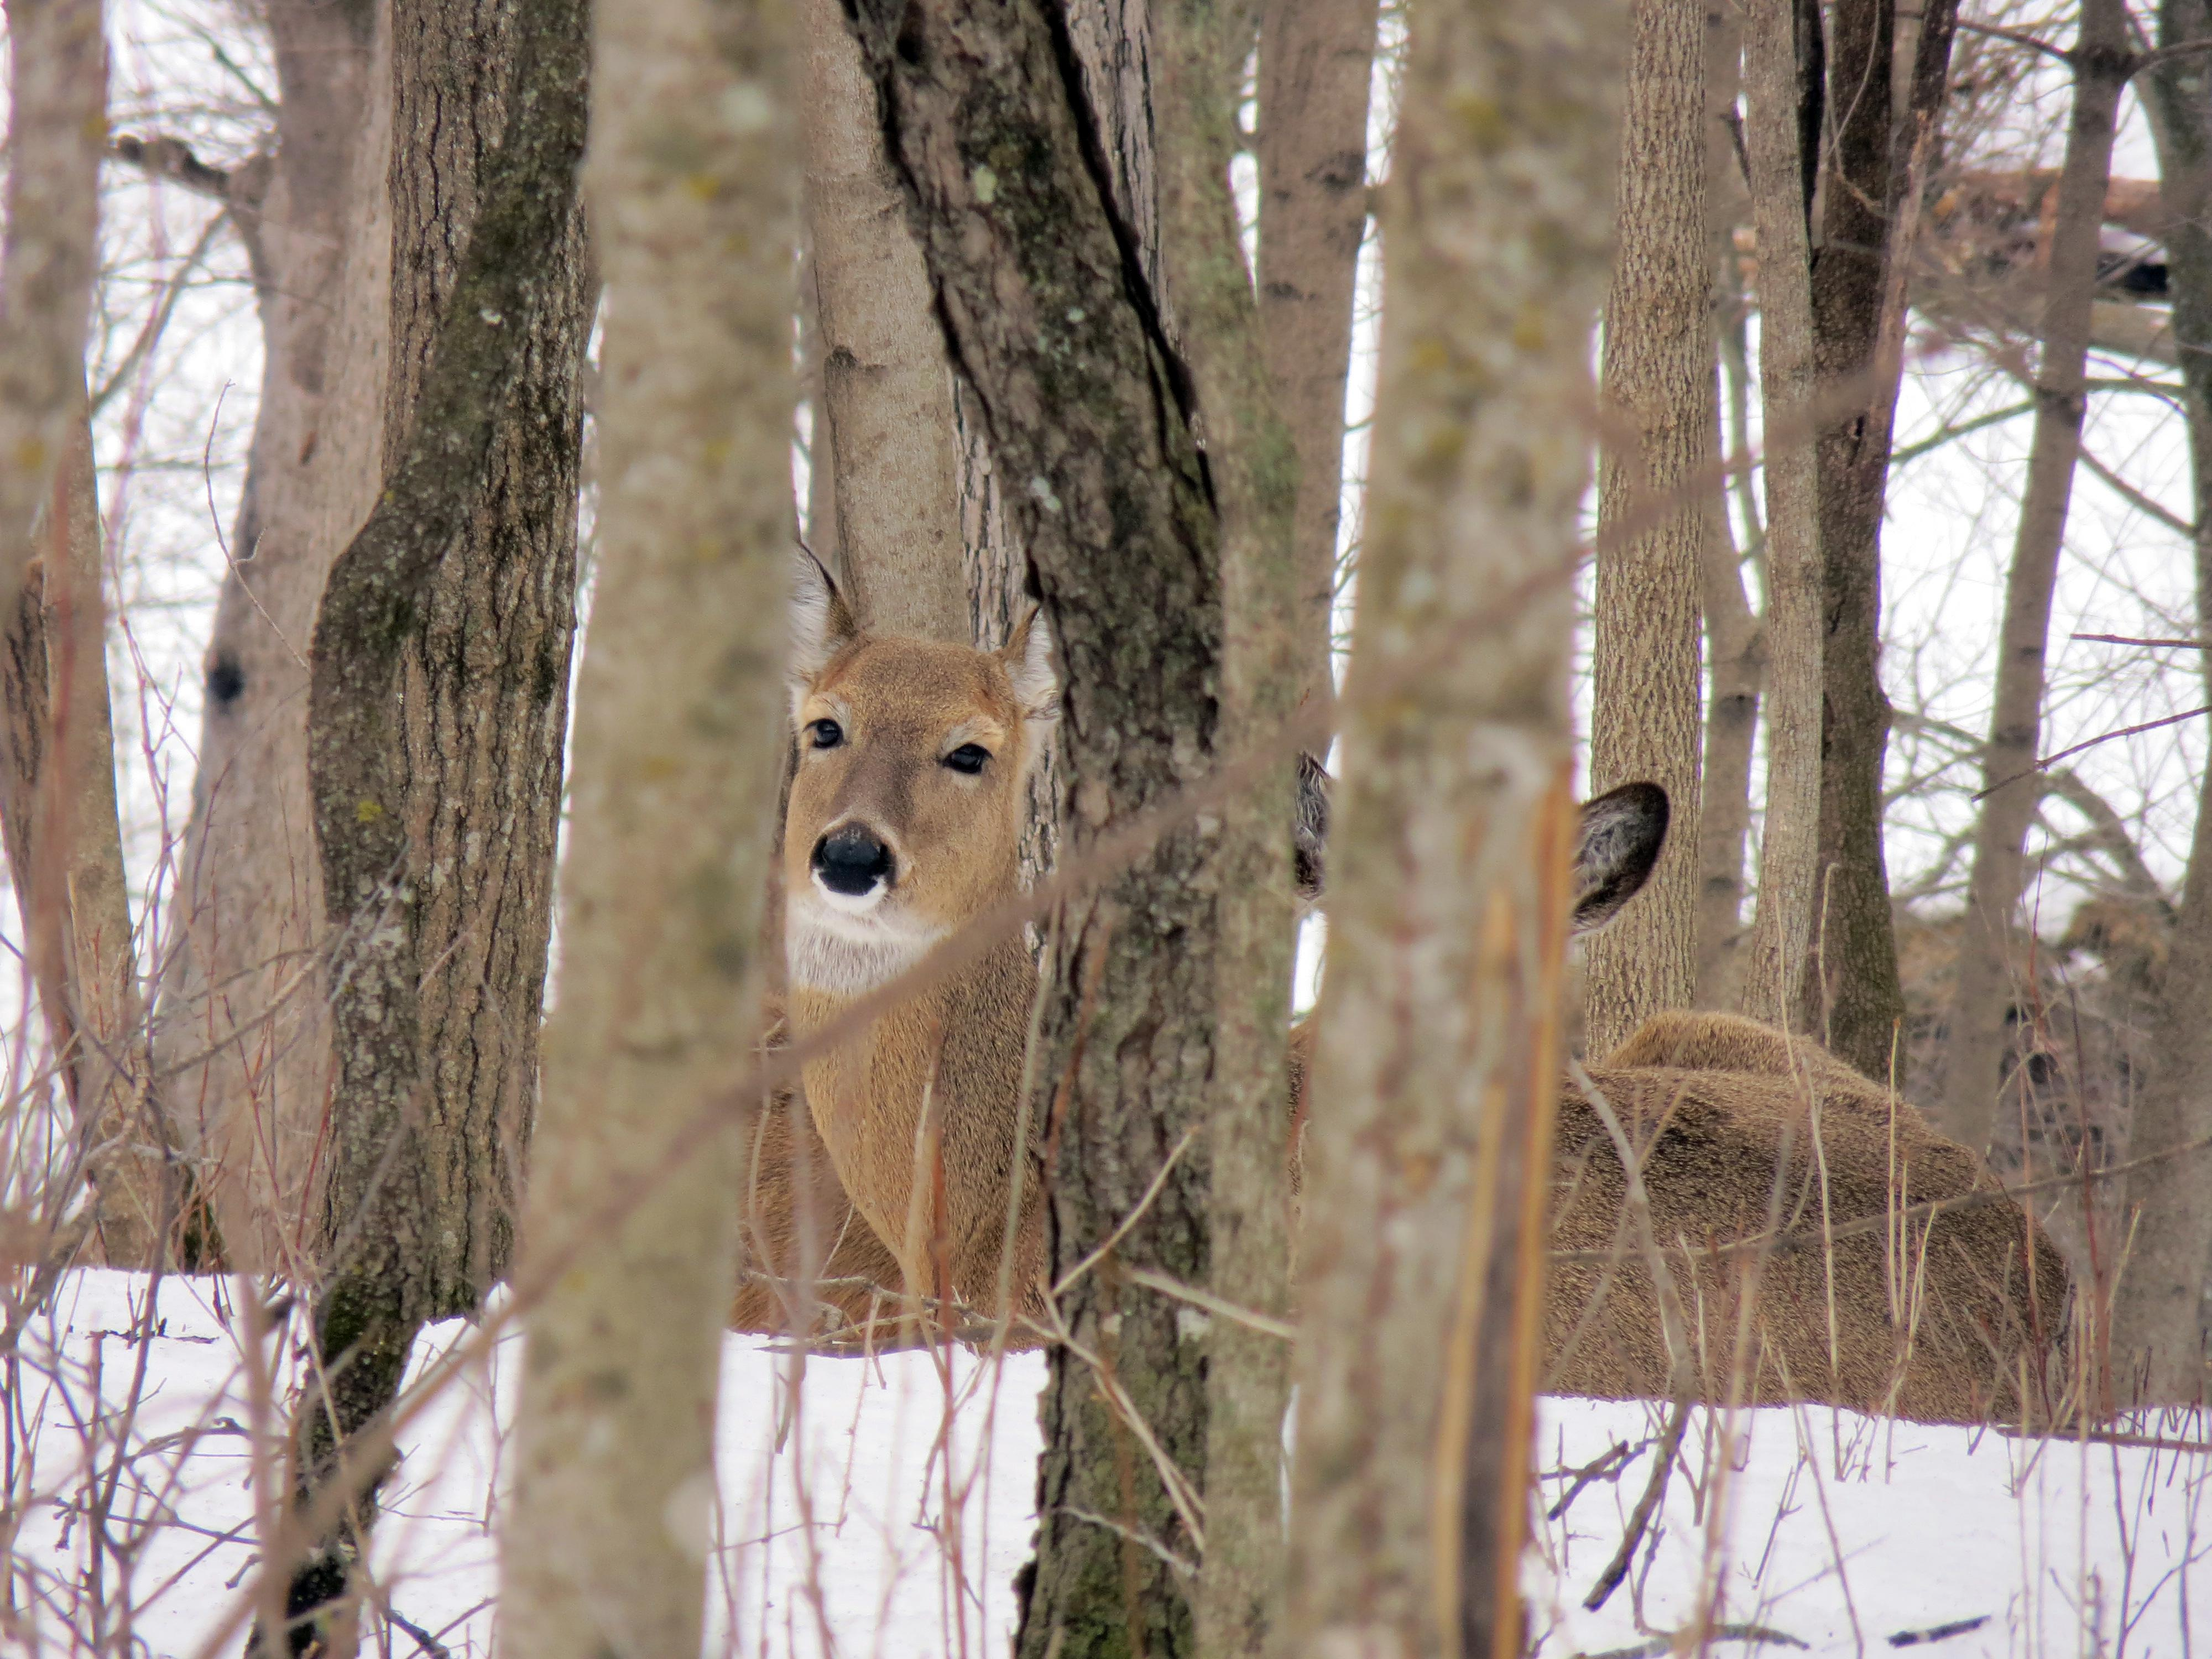 Image of deer hidden in trees